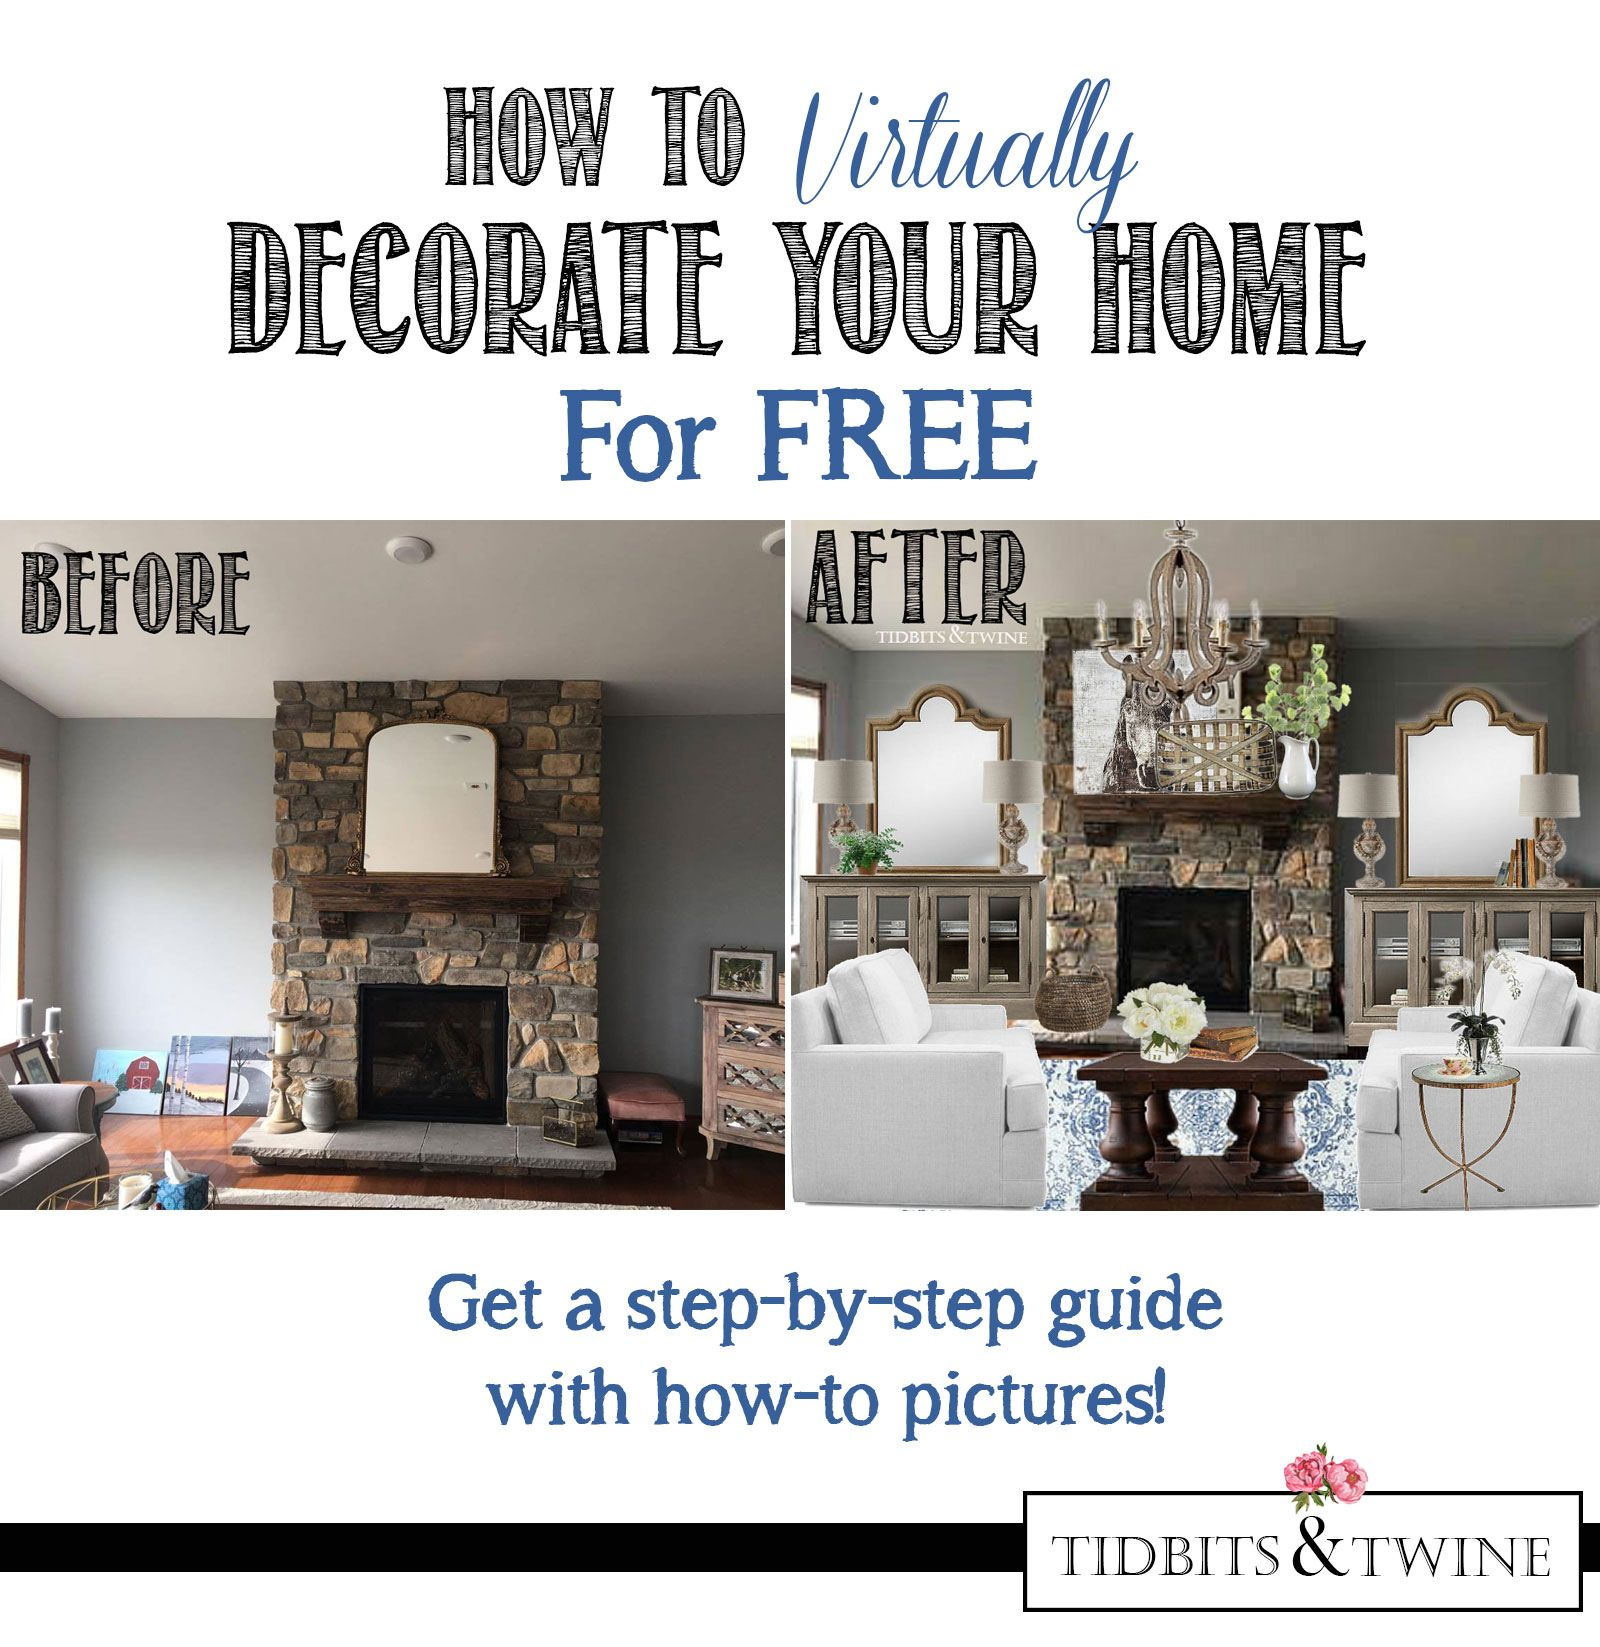 Genial Learn An Easy Way To Decorate Your Home Virtually! Simple Step By Step  Tutorial Guides You Through A Stunning BEFORE And AFTER Makeover.